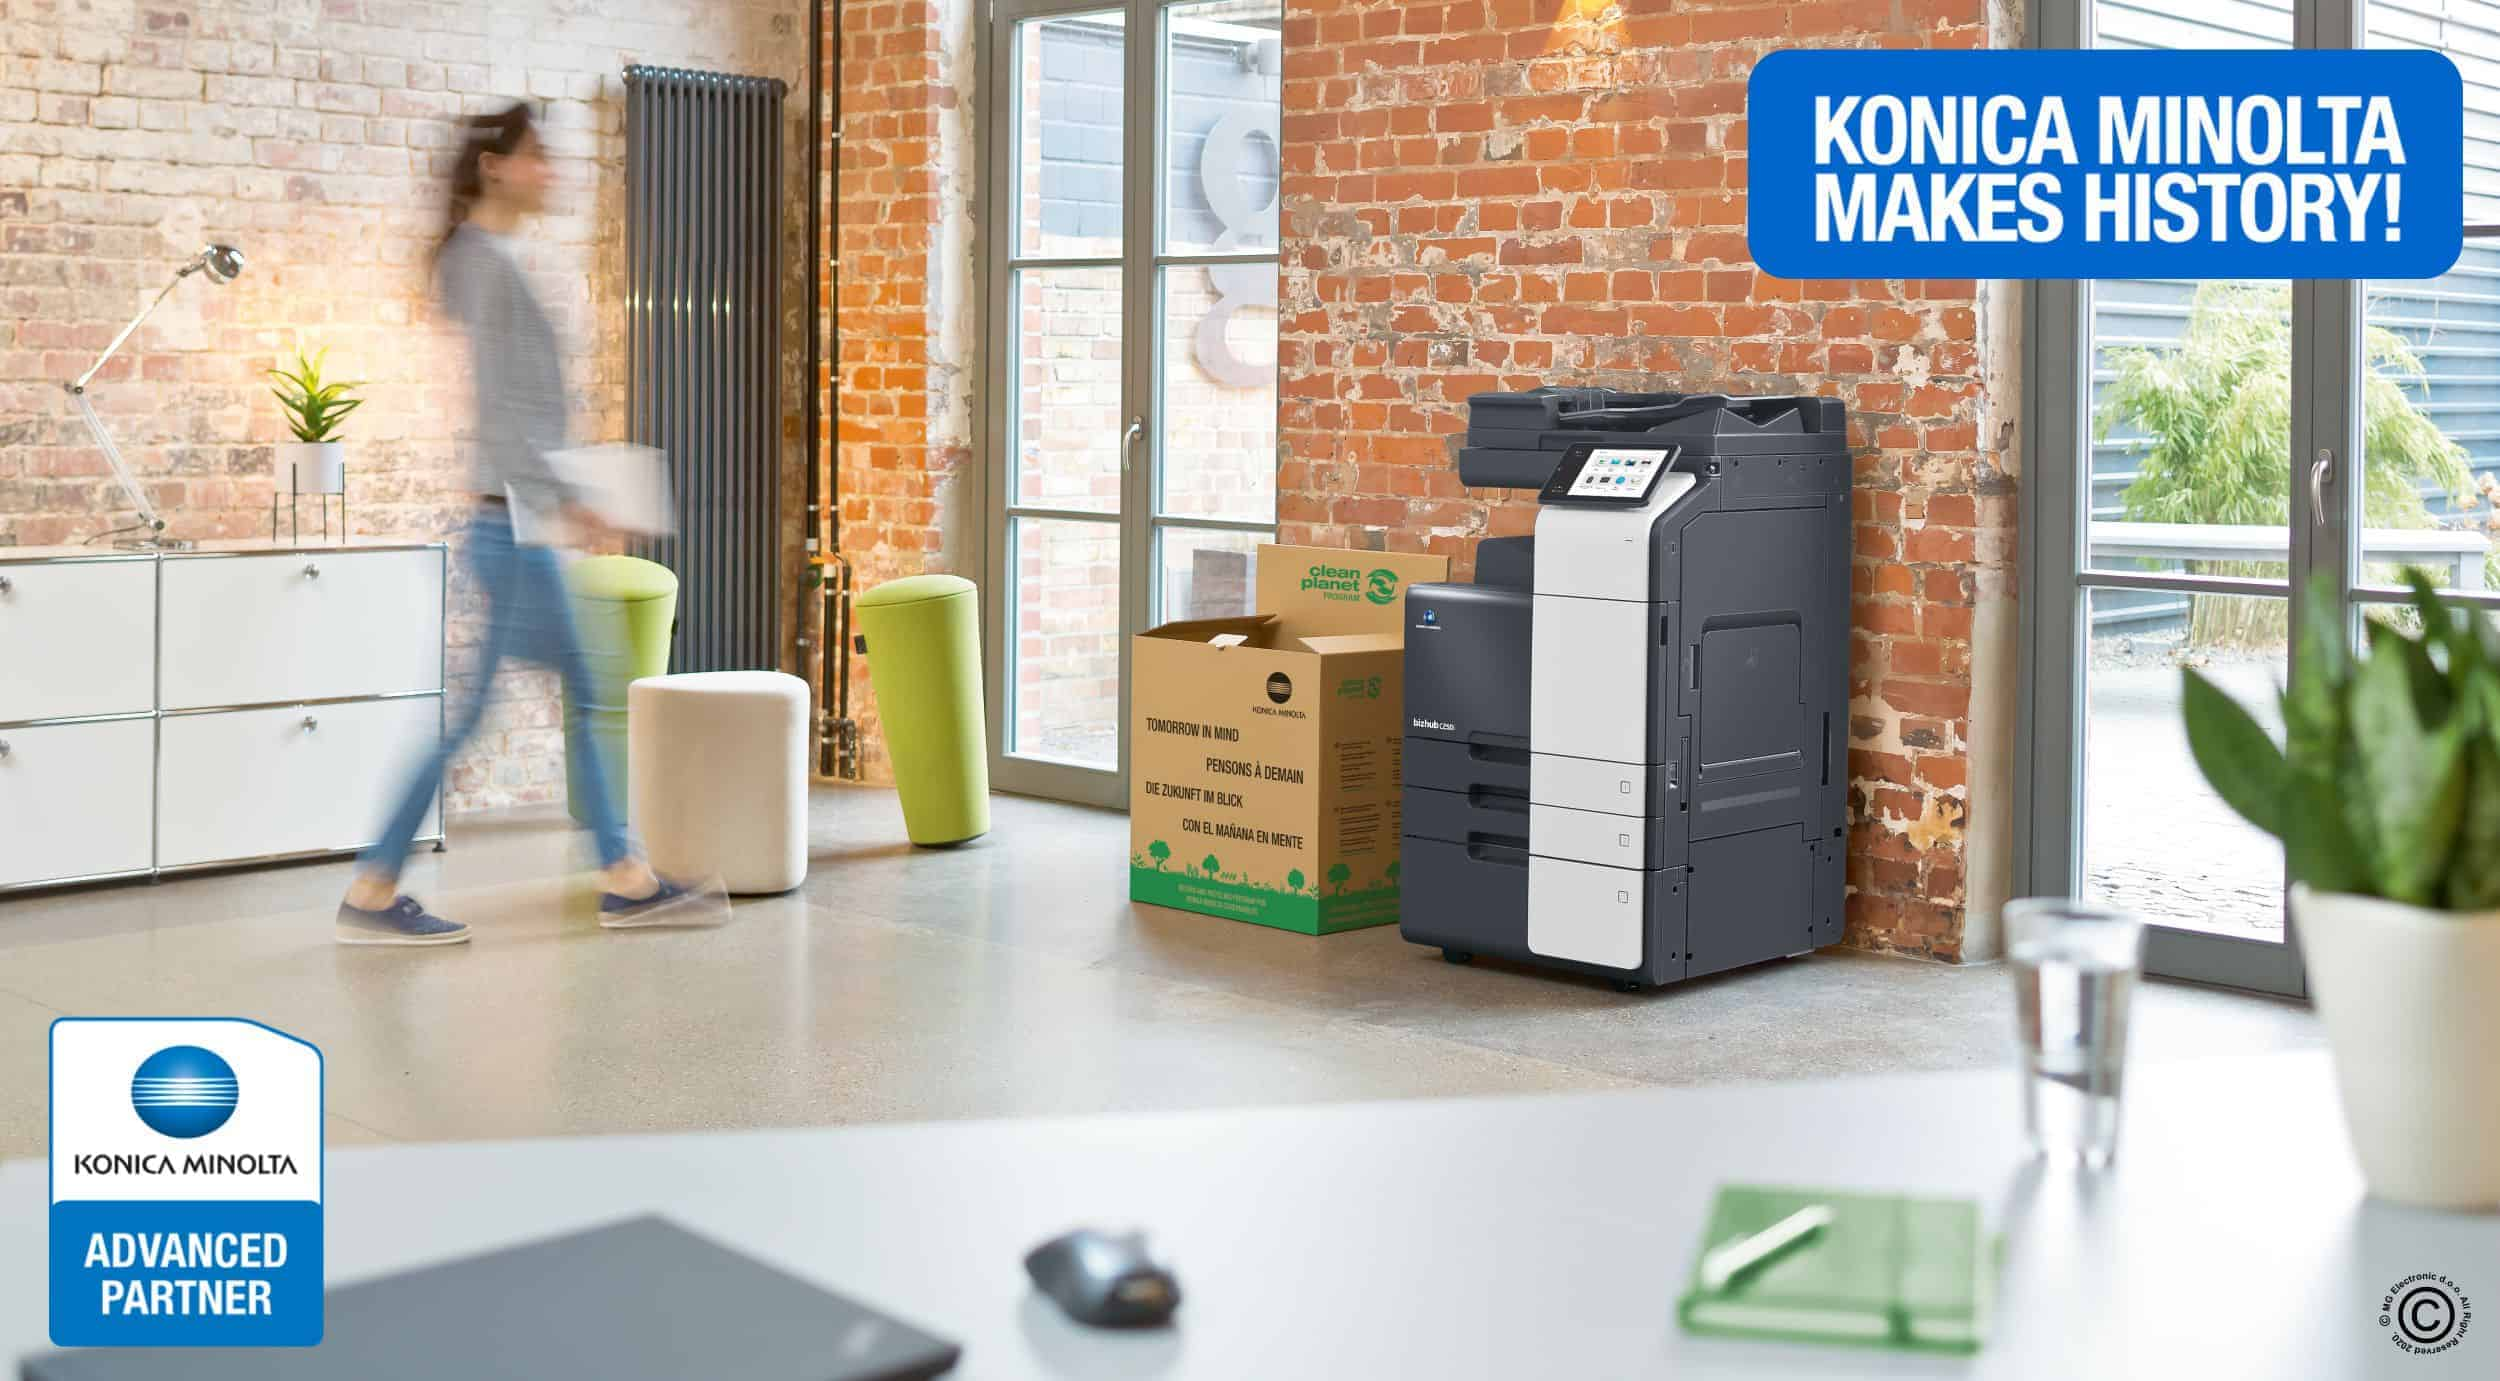 Konica Minolta MG Electronic doo Pula - © All Rights Reserved M.G. Electronic d.o.o. 2020.